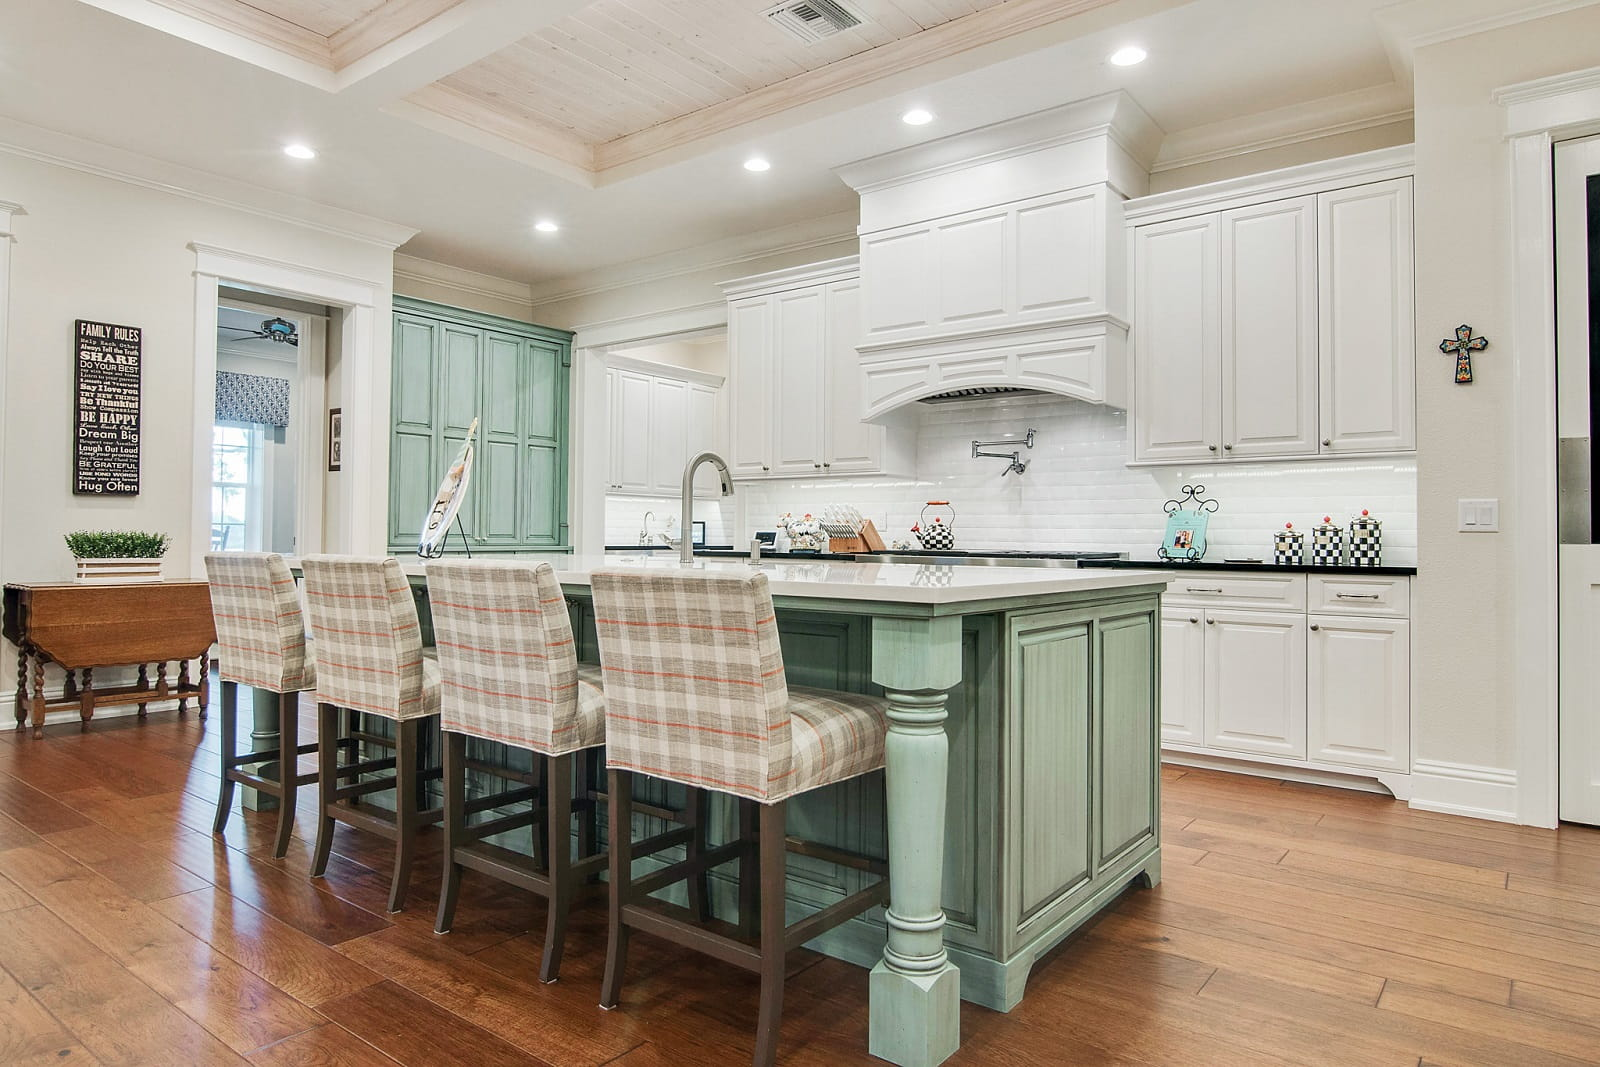 Real Estate Photography in Lakeland - FL - USA - Kitchen View